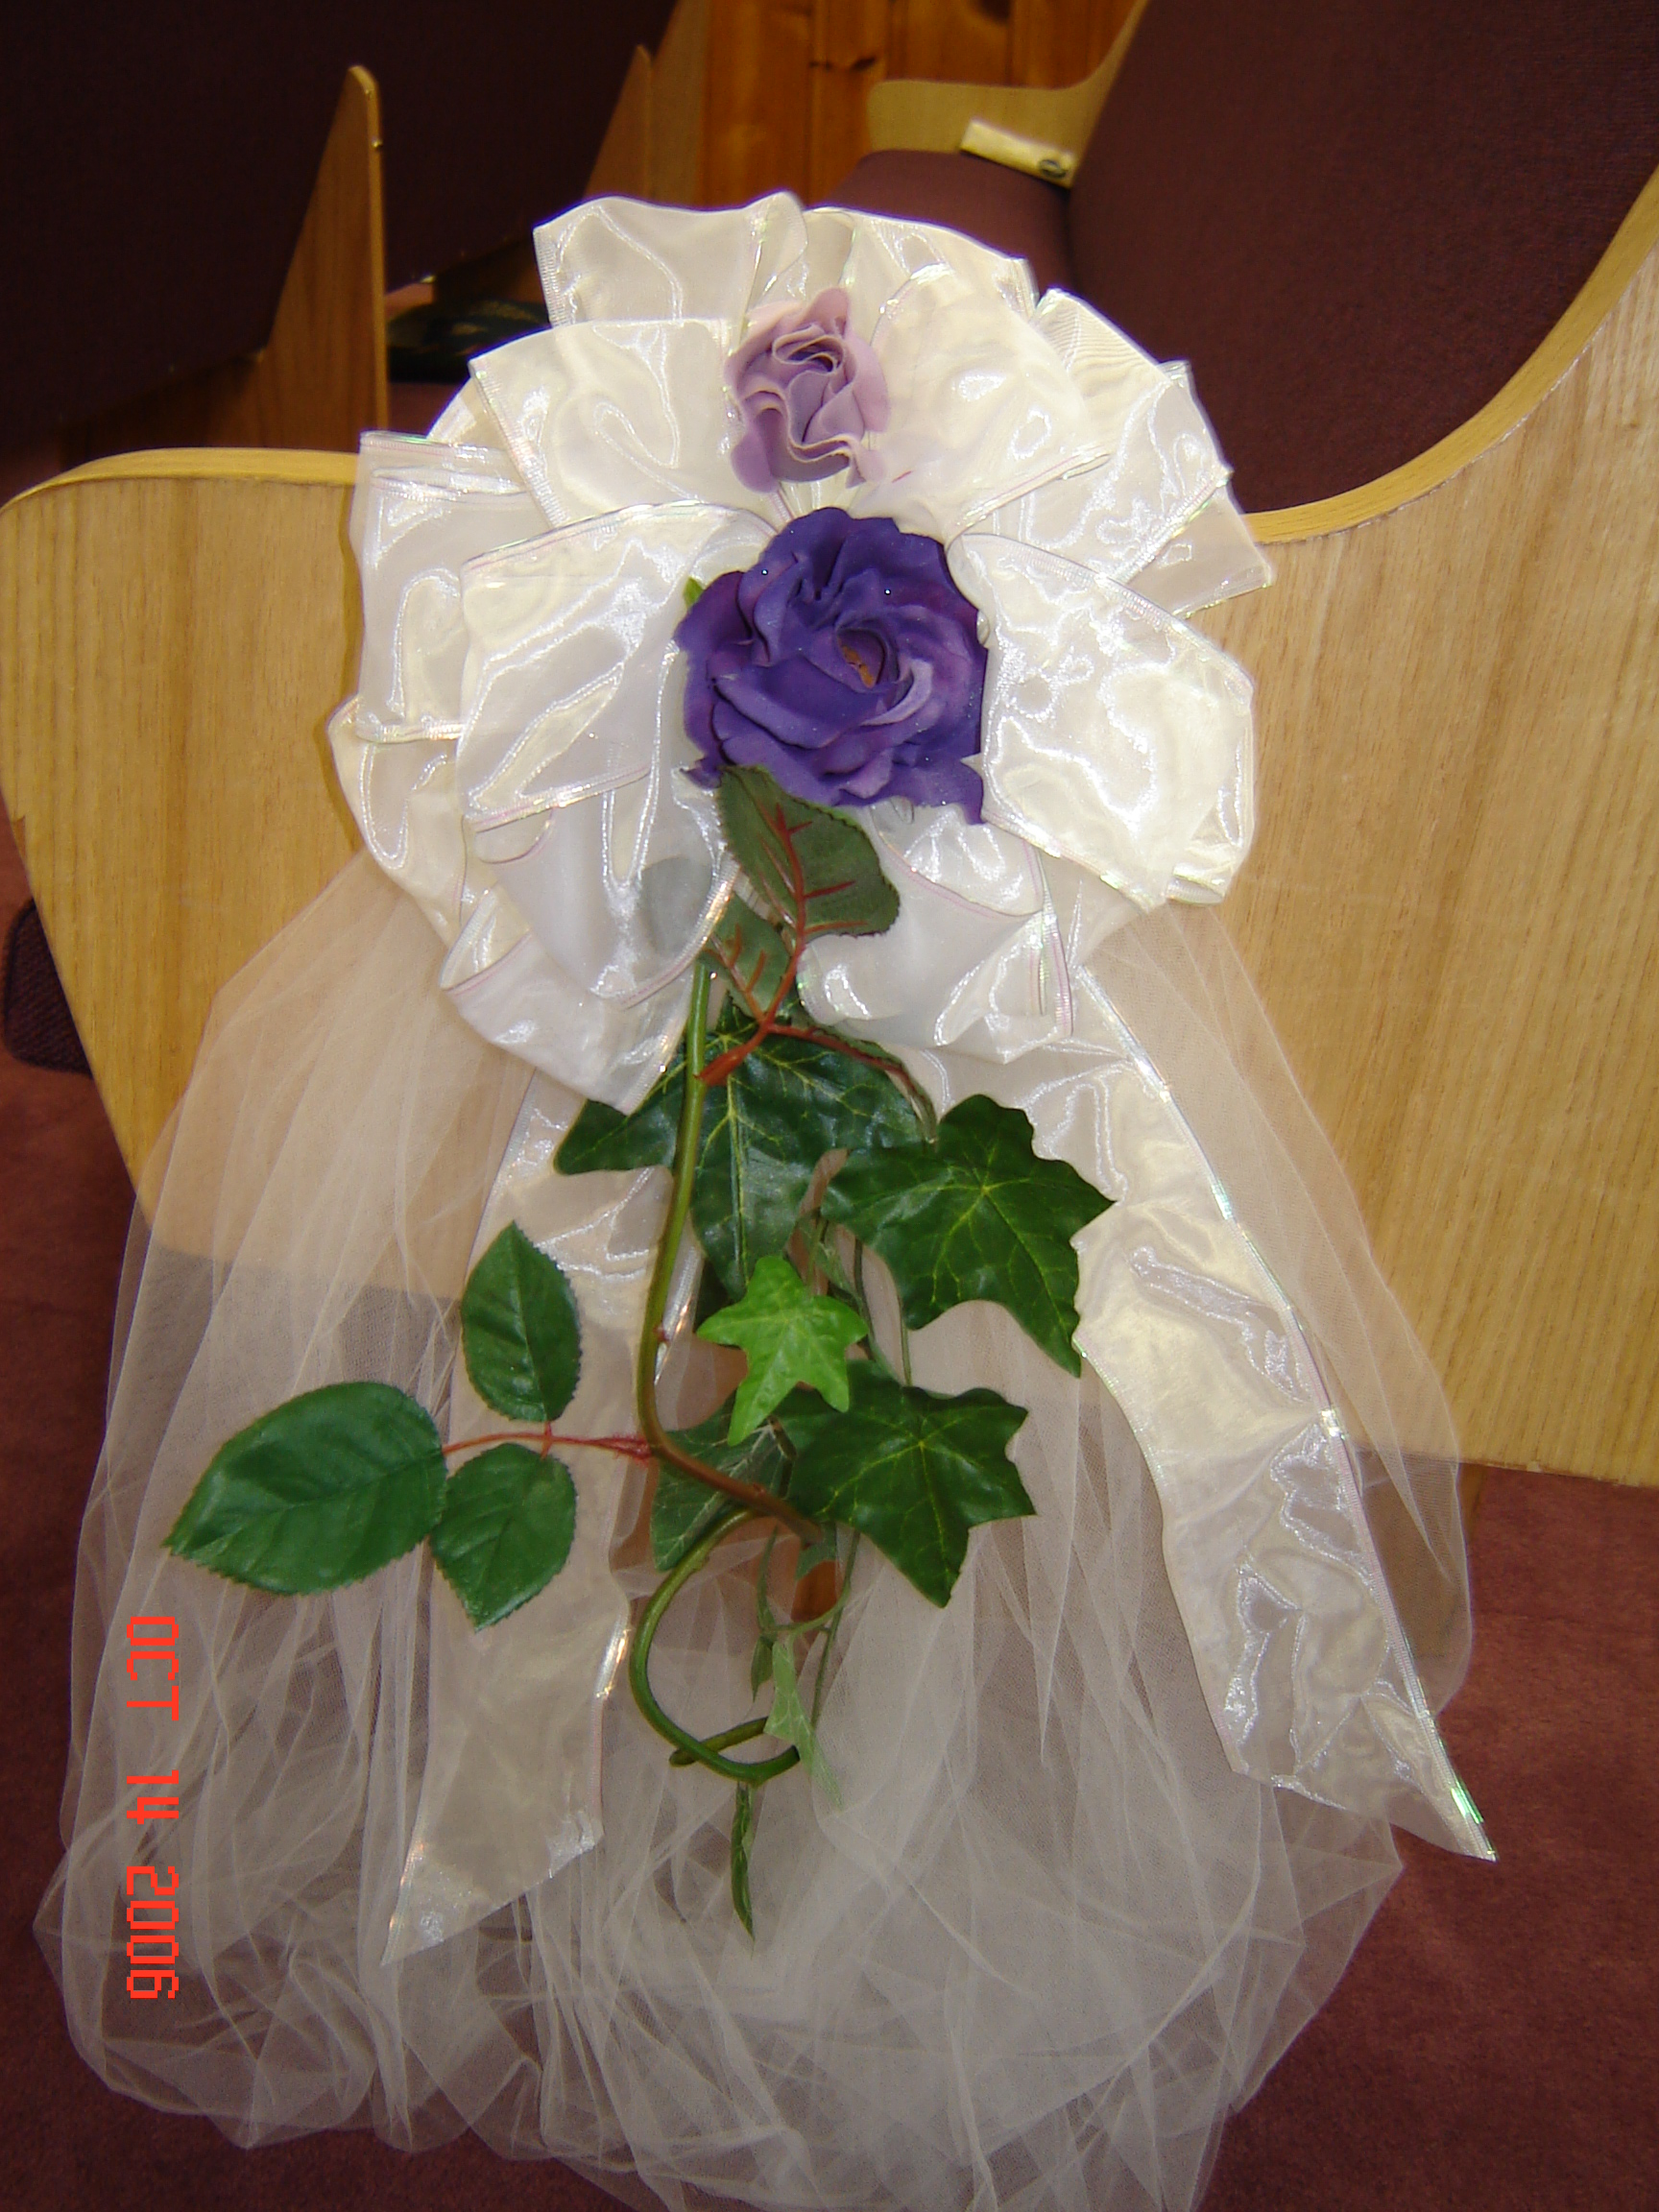 Simply elegant weddings flowers silk flowers silk bouquets simply elegant weddings flowers silk flowers silk bouquets corsages boutonnieres fort worth tx dallas tx fort worthtxtxtxtxfort worth mightylinksfo